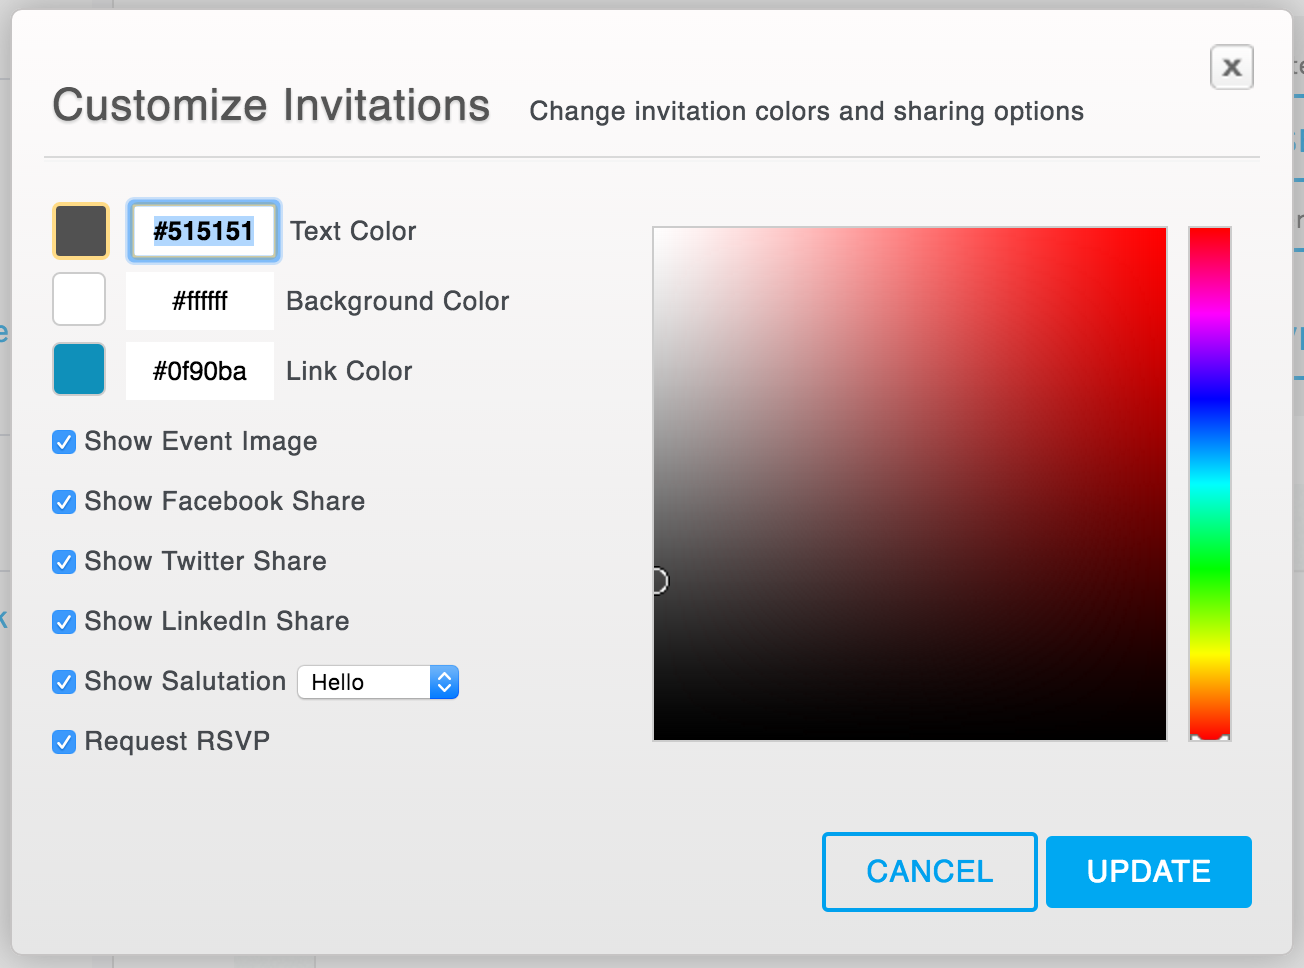 Customize is located at the top of the invitation preview, above the Edit button.